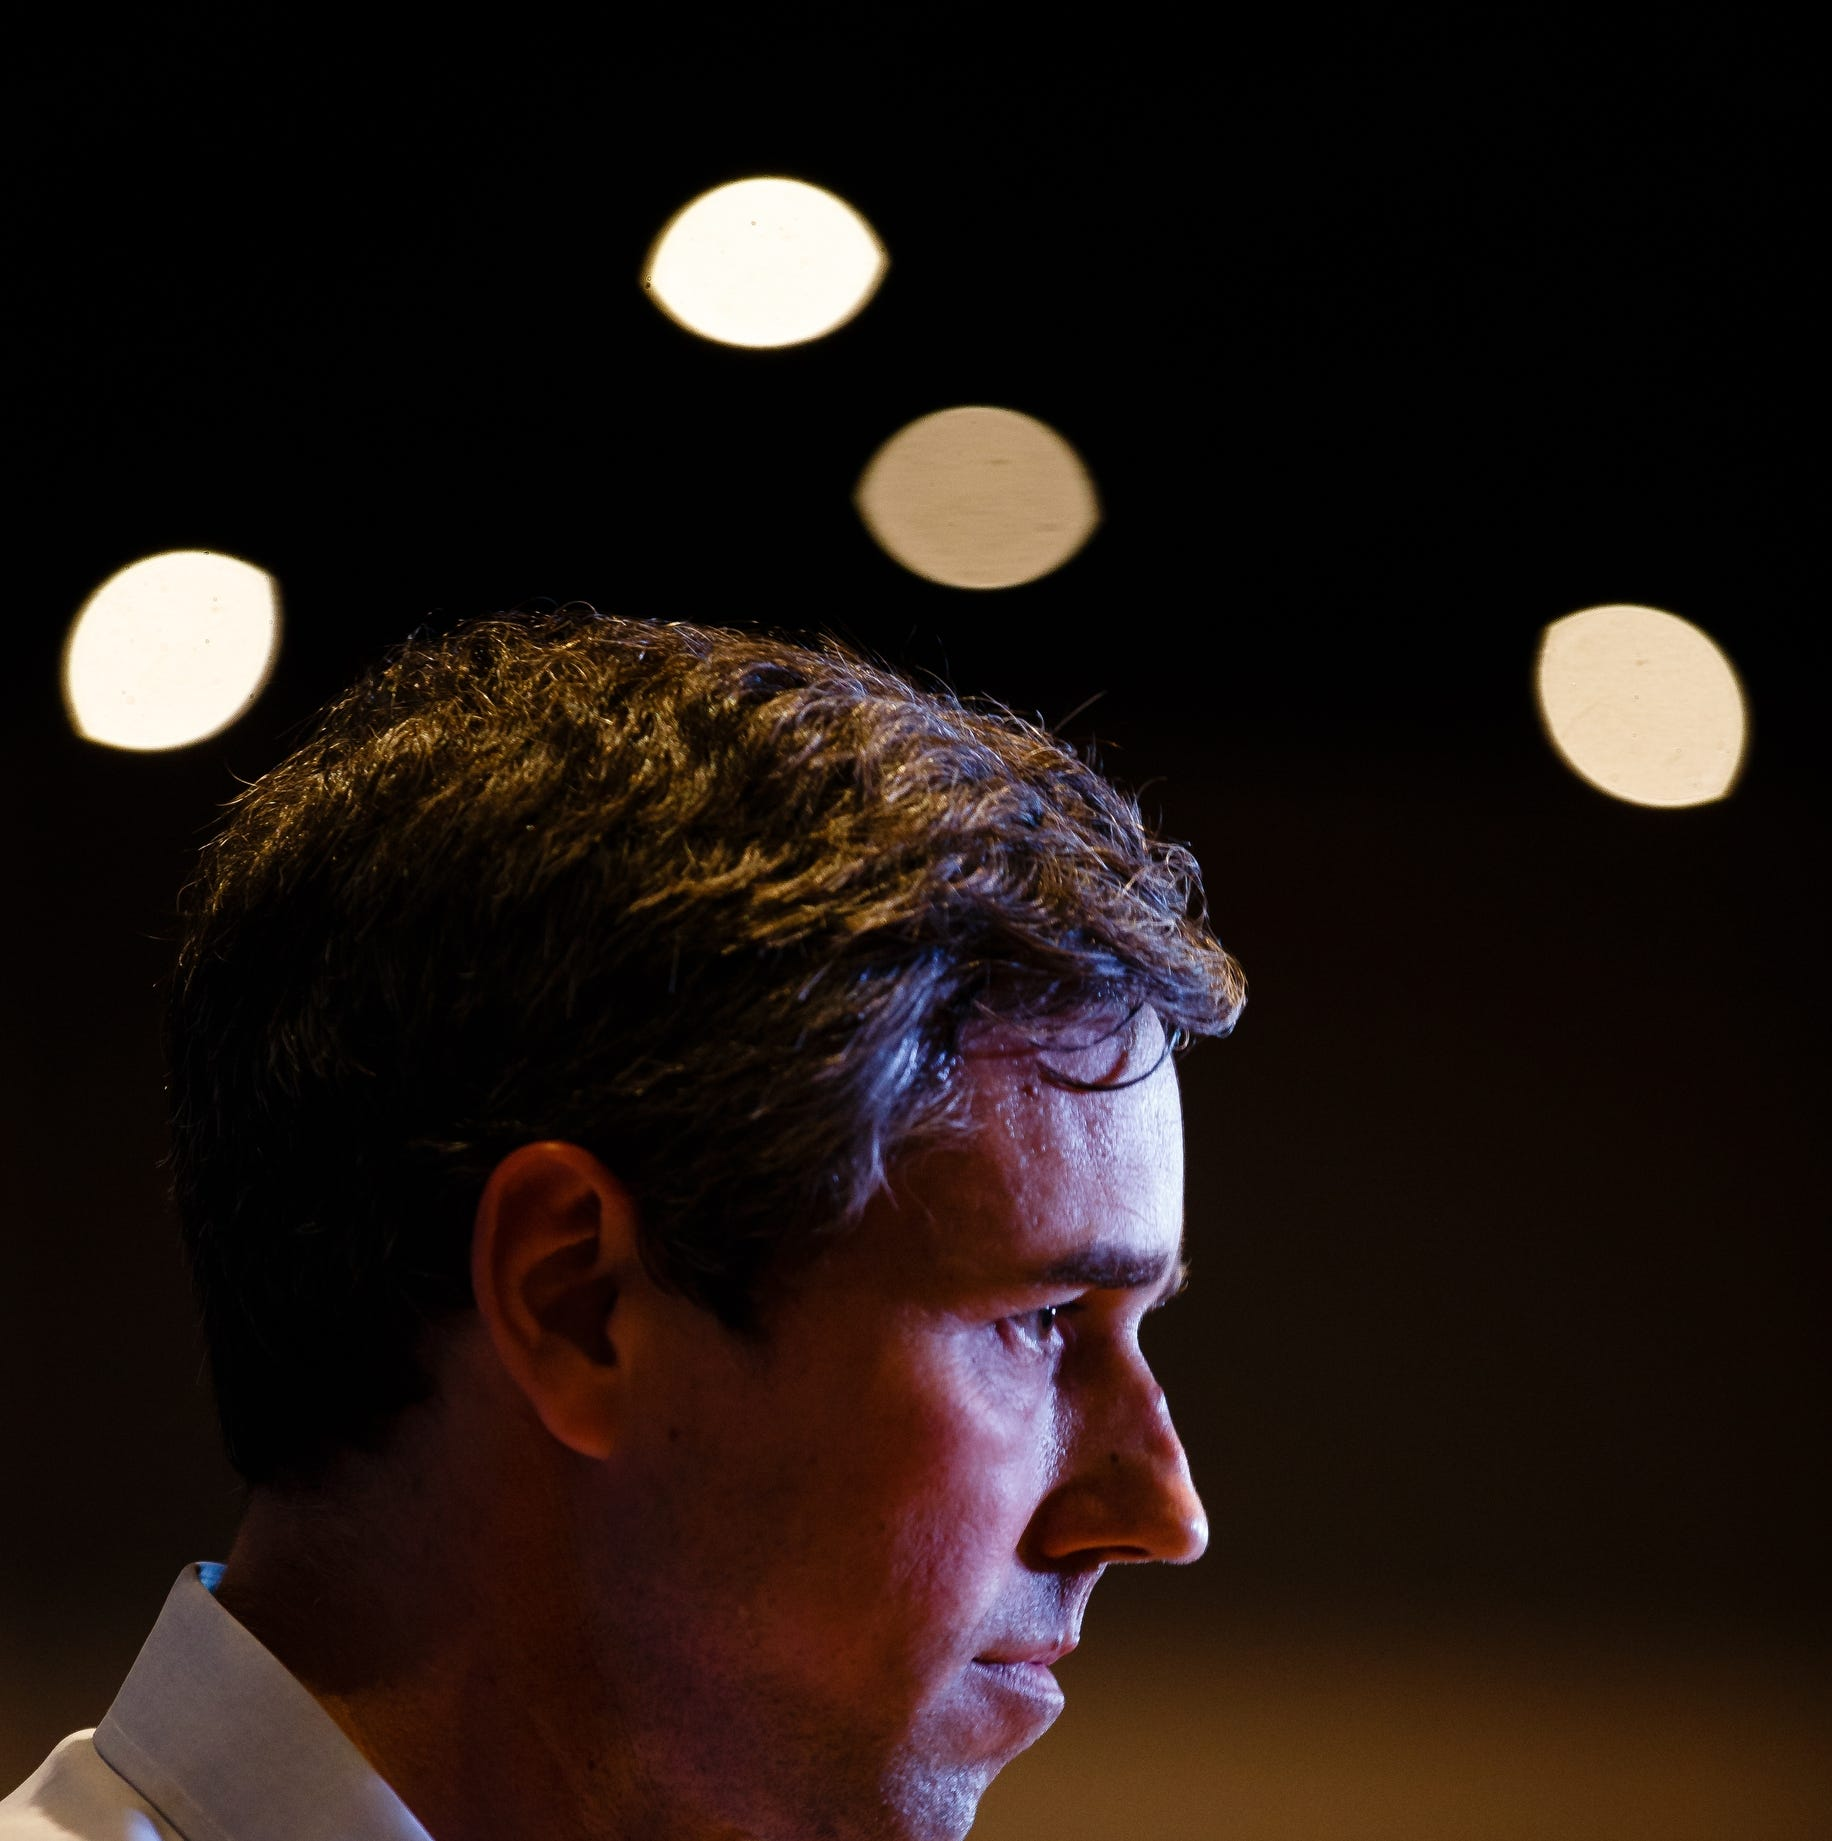 'There is a human solution to this human-caused problem,' Beto O'Rourke says after Colorado school shooting